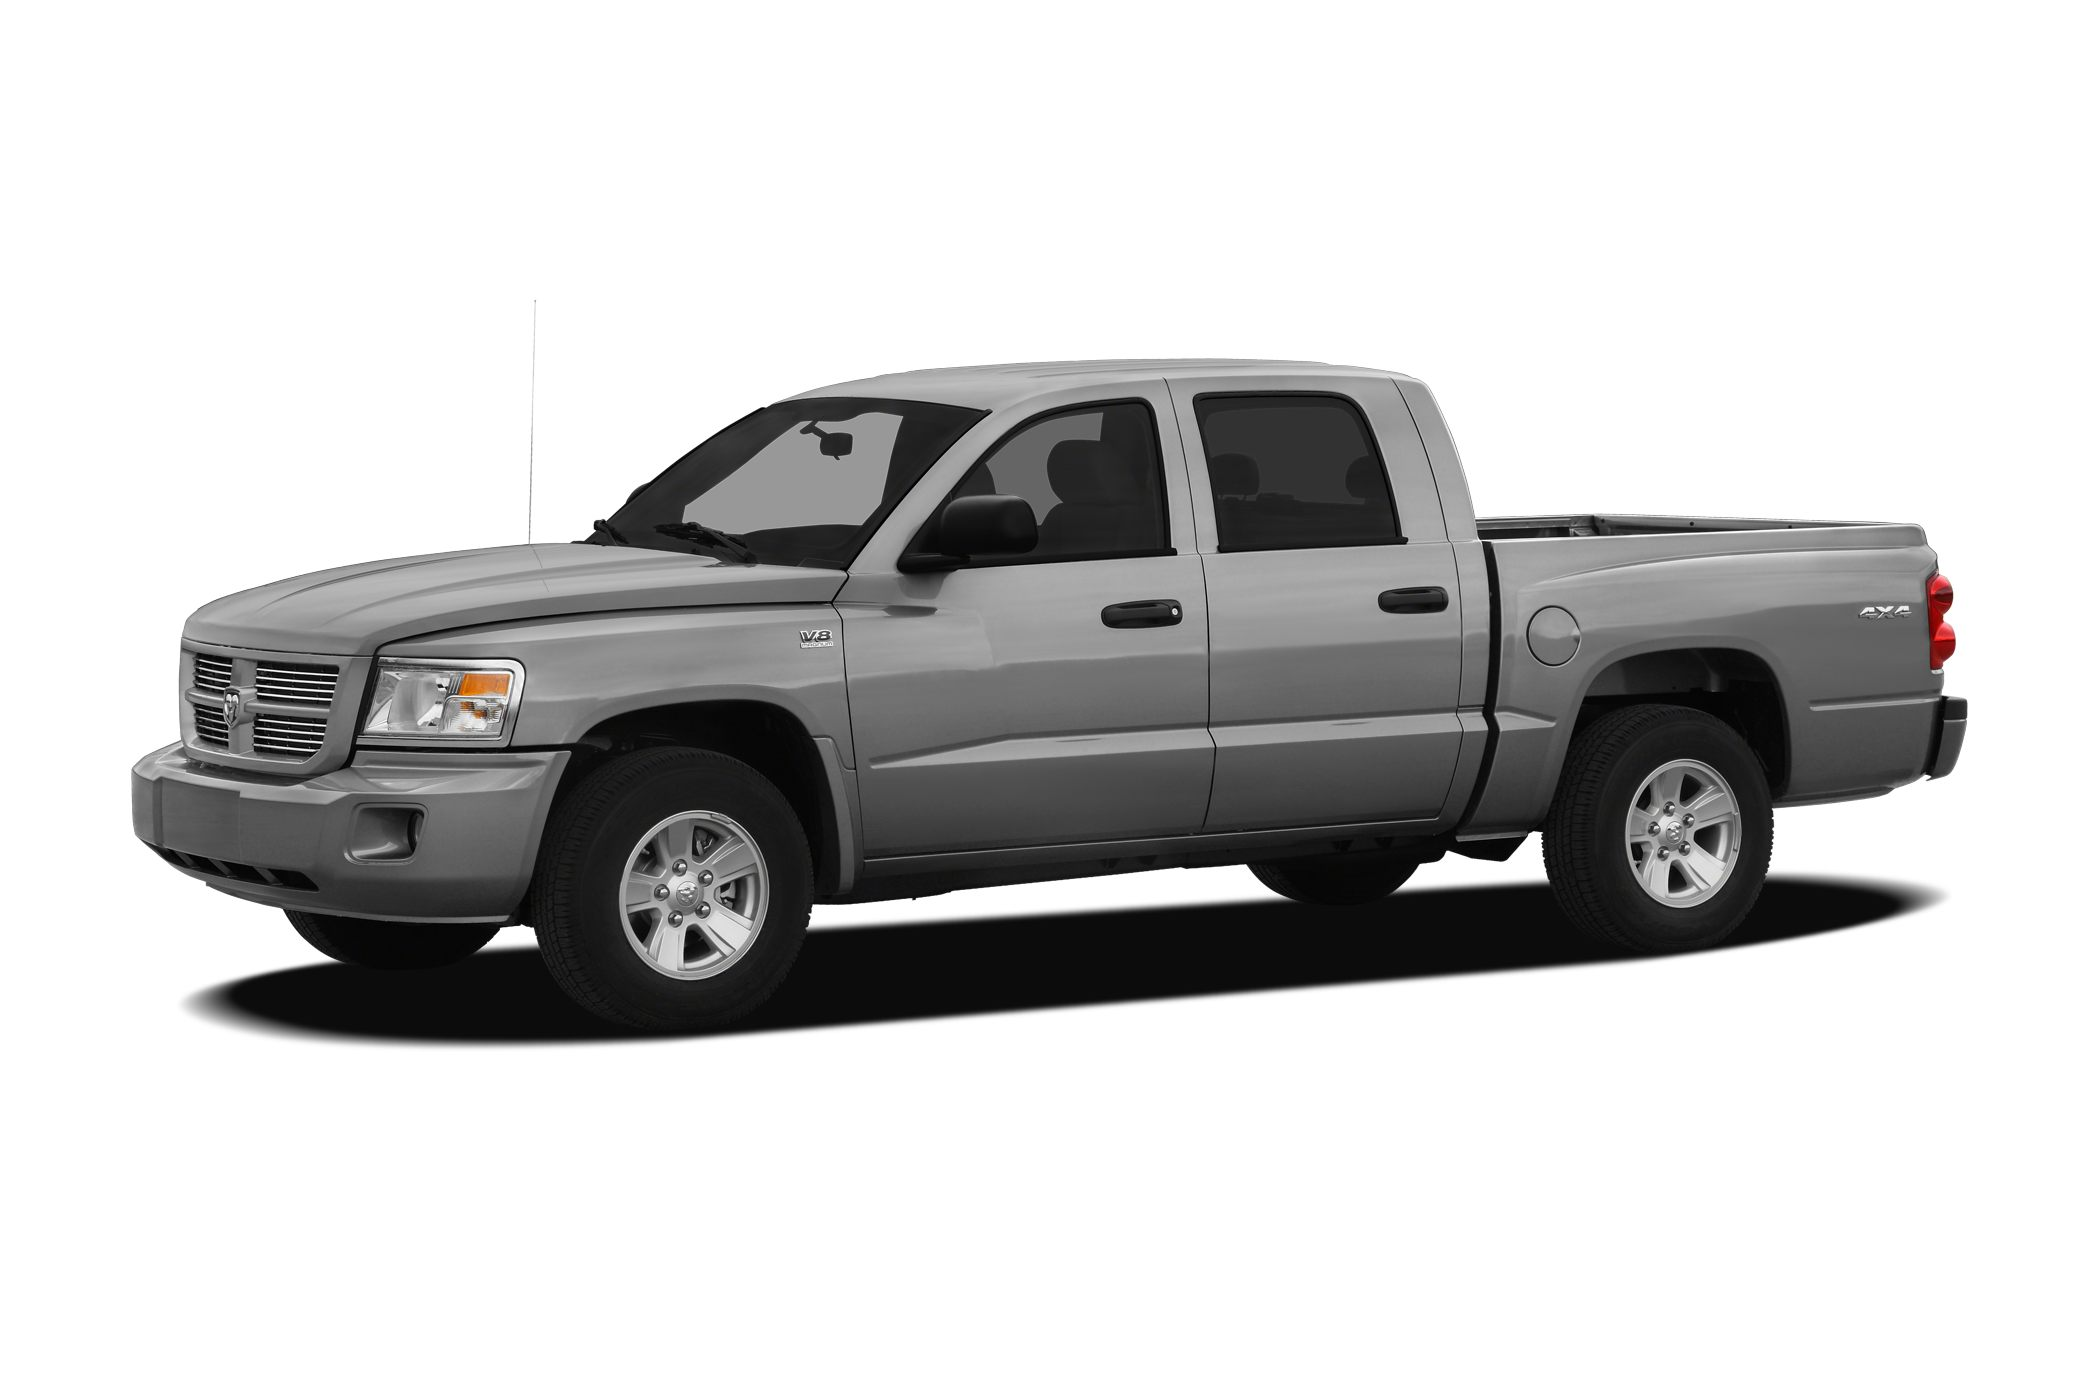 2009 Dodge Dakota Big HornLone Star 4D Crew Cab 47L V8 5-Speed Automatic and 4WD Short Bed